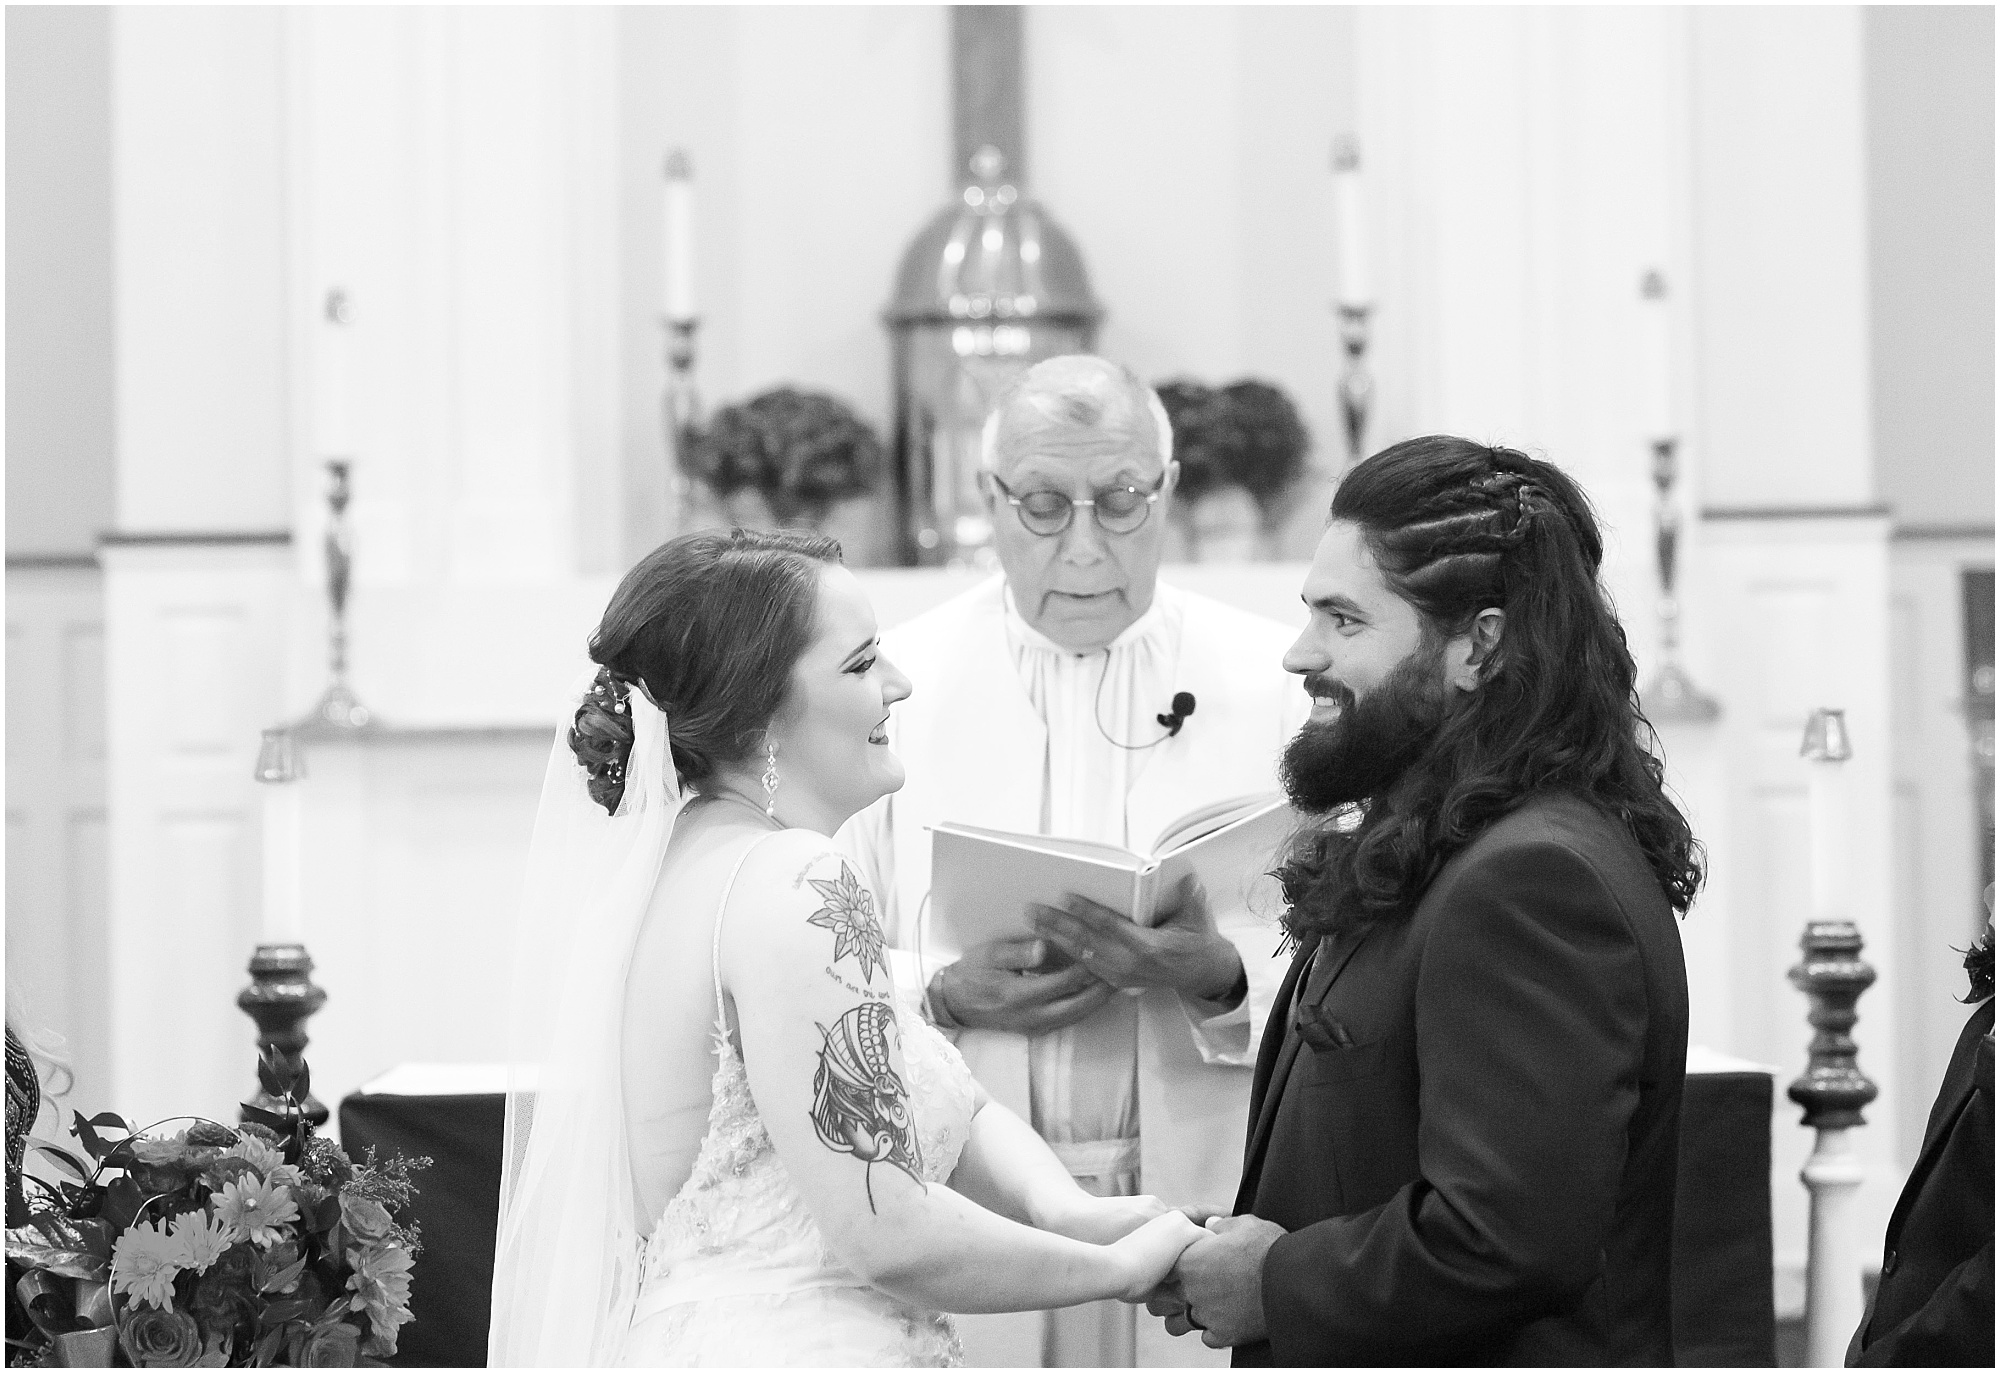 Groom and bride smile at one another after exchanging vows, black and white image - Jason & Melaina Photography - http://jasonandmelaina.com